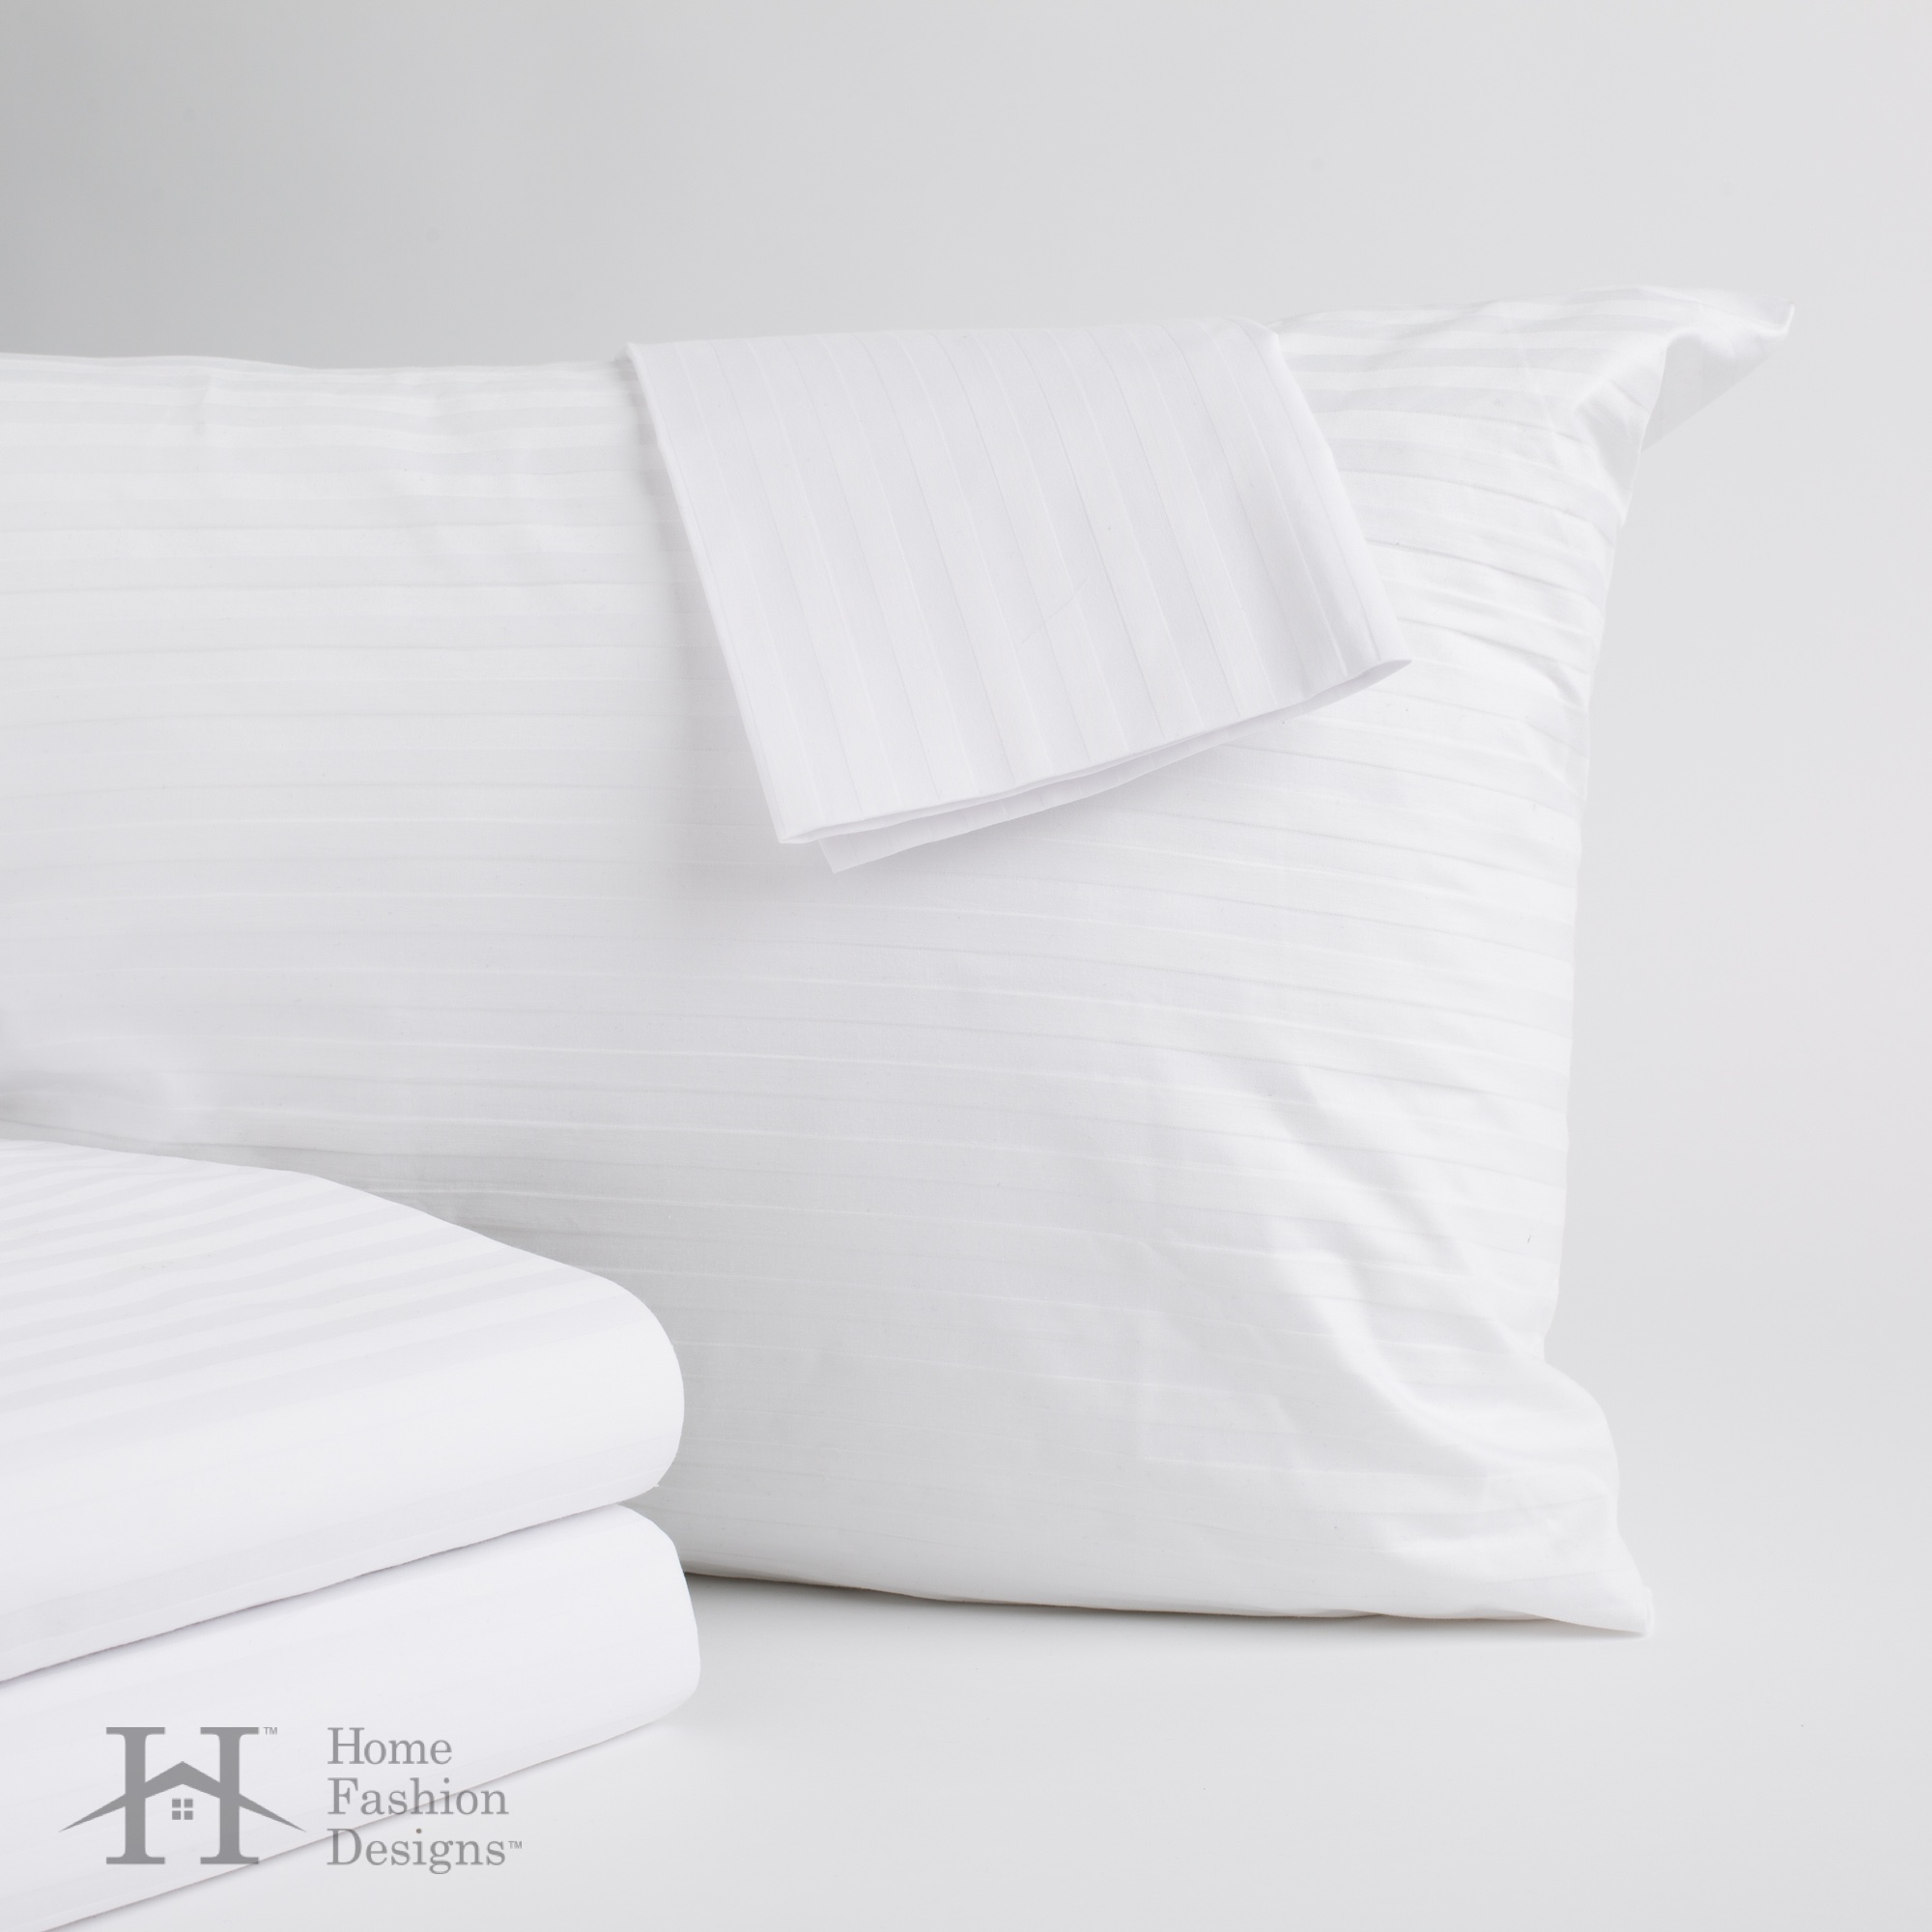 4-Pack 100% Cotton 400 Thread Count Allergy Pillow Protectors By Home Fashion Designs by Home Fashion Designs